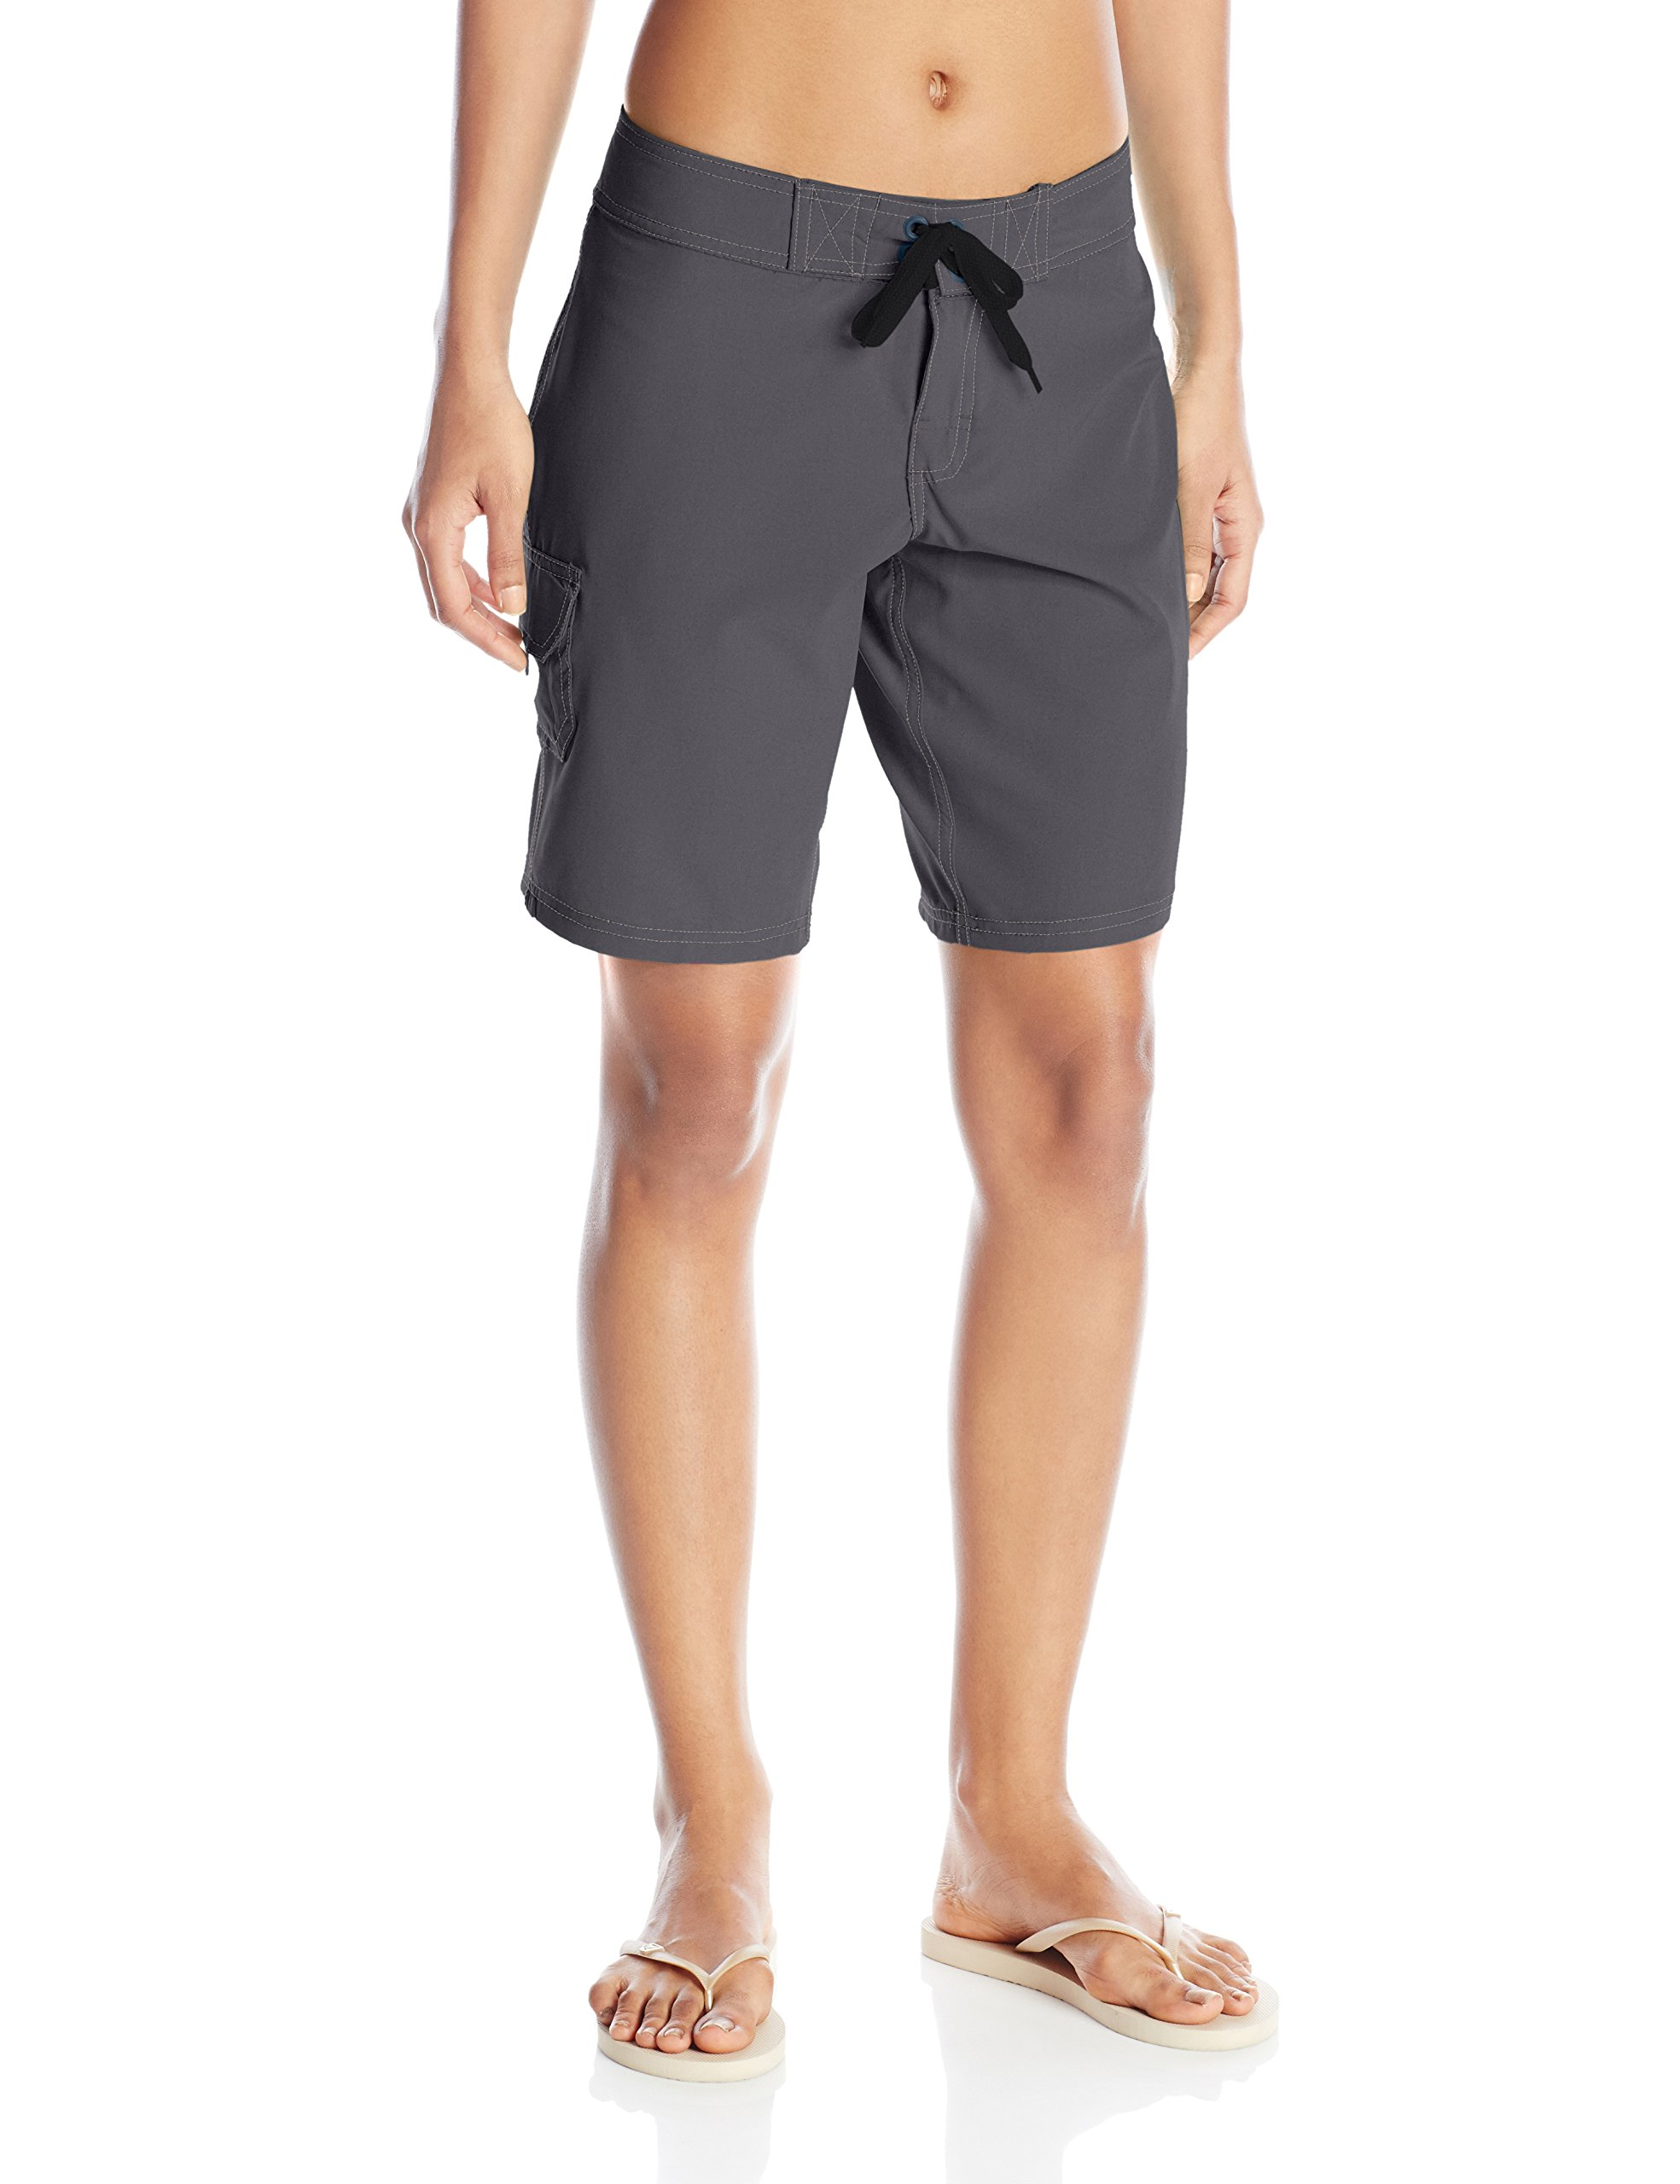 Kanu Surf Women's Marina Solid Stretch Boardshort, Charcoal, 8